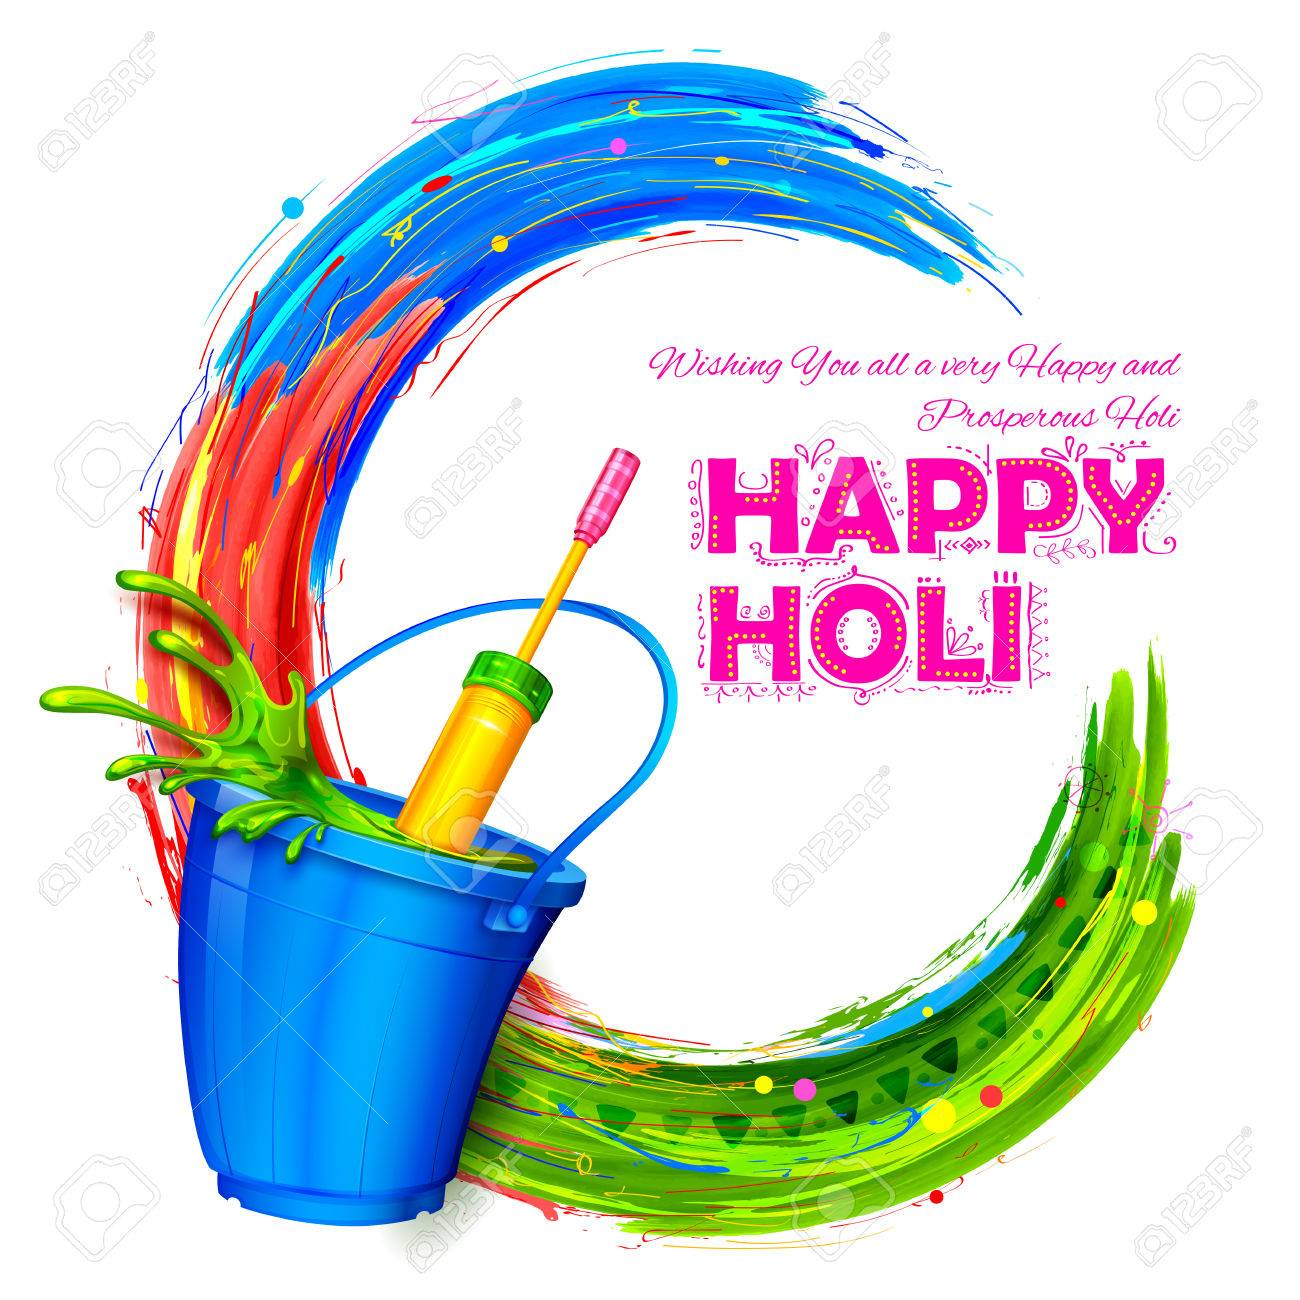 Illustration Of Splashy Bucket With Pichkari In Happy Holi 1300x1300